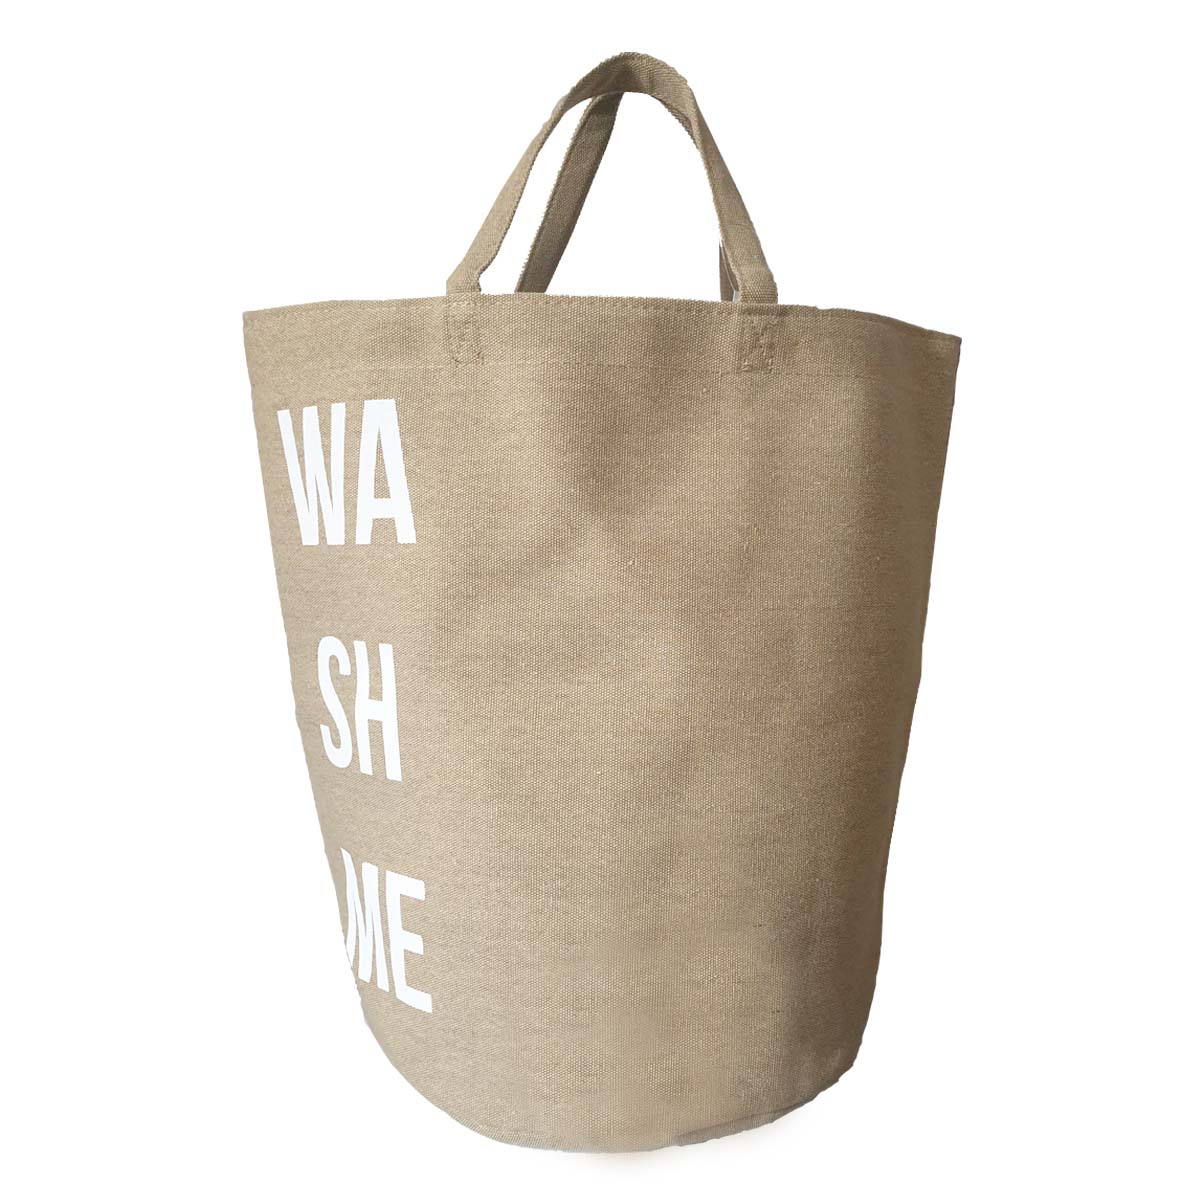 Sac à linge en tissu beige naturel avec inscription Wash It